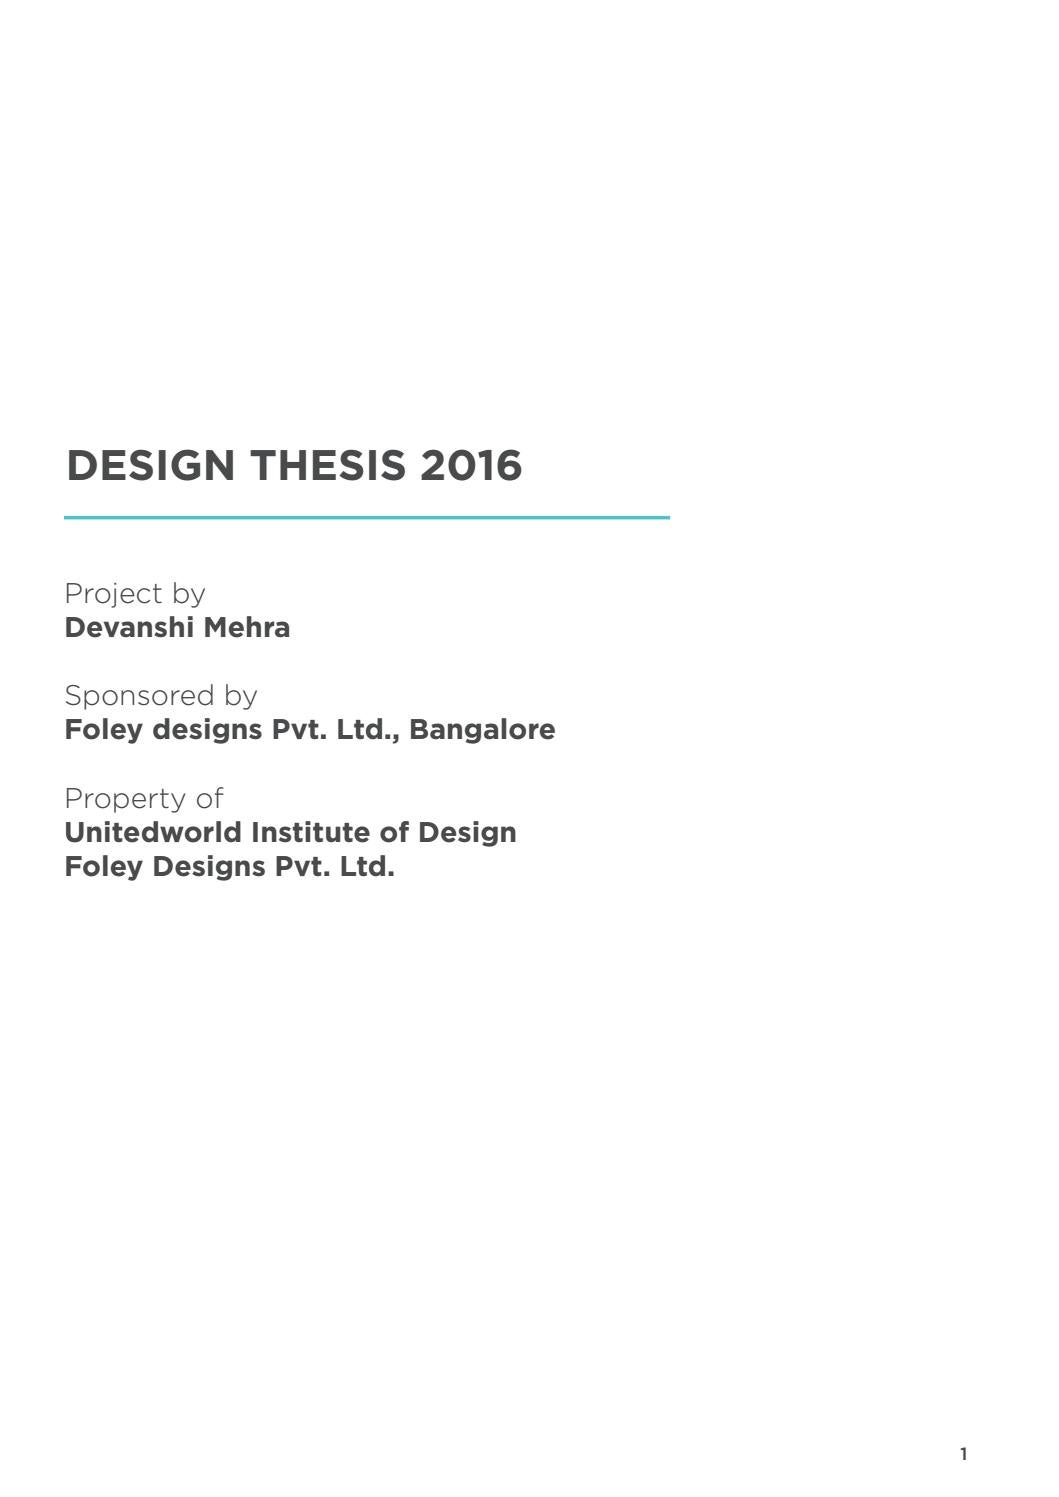 Thesis project 2016 (Public Toilets) by Devanshi Mehra - issuu